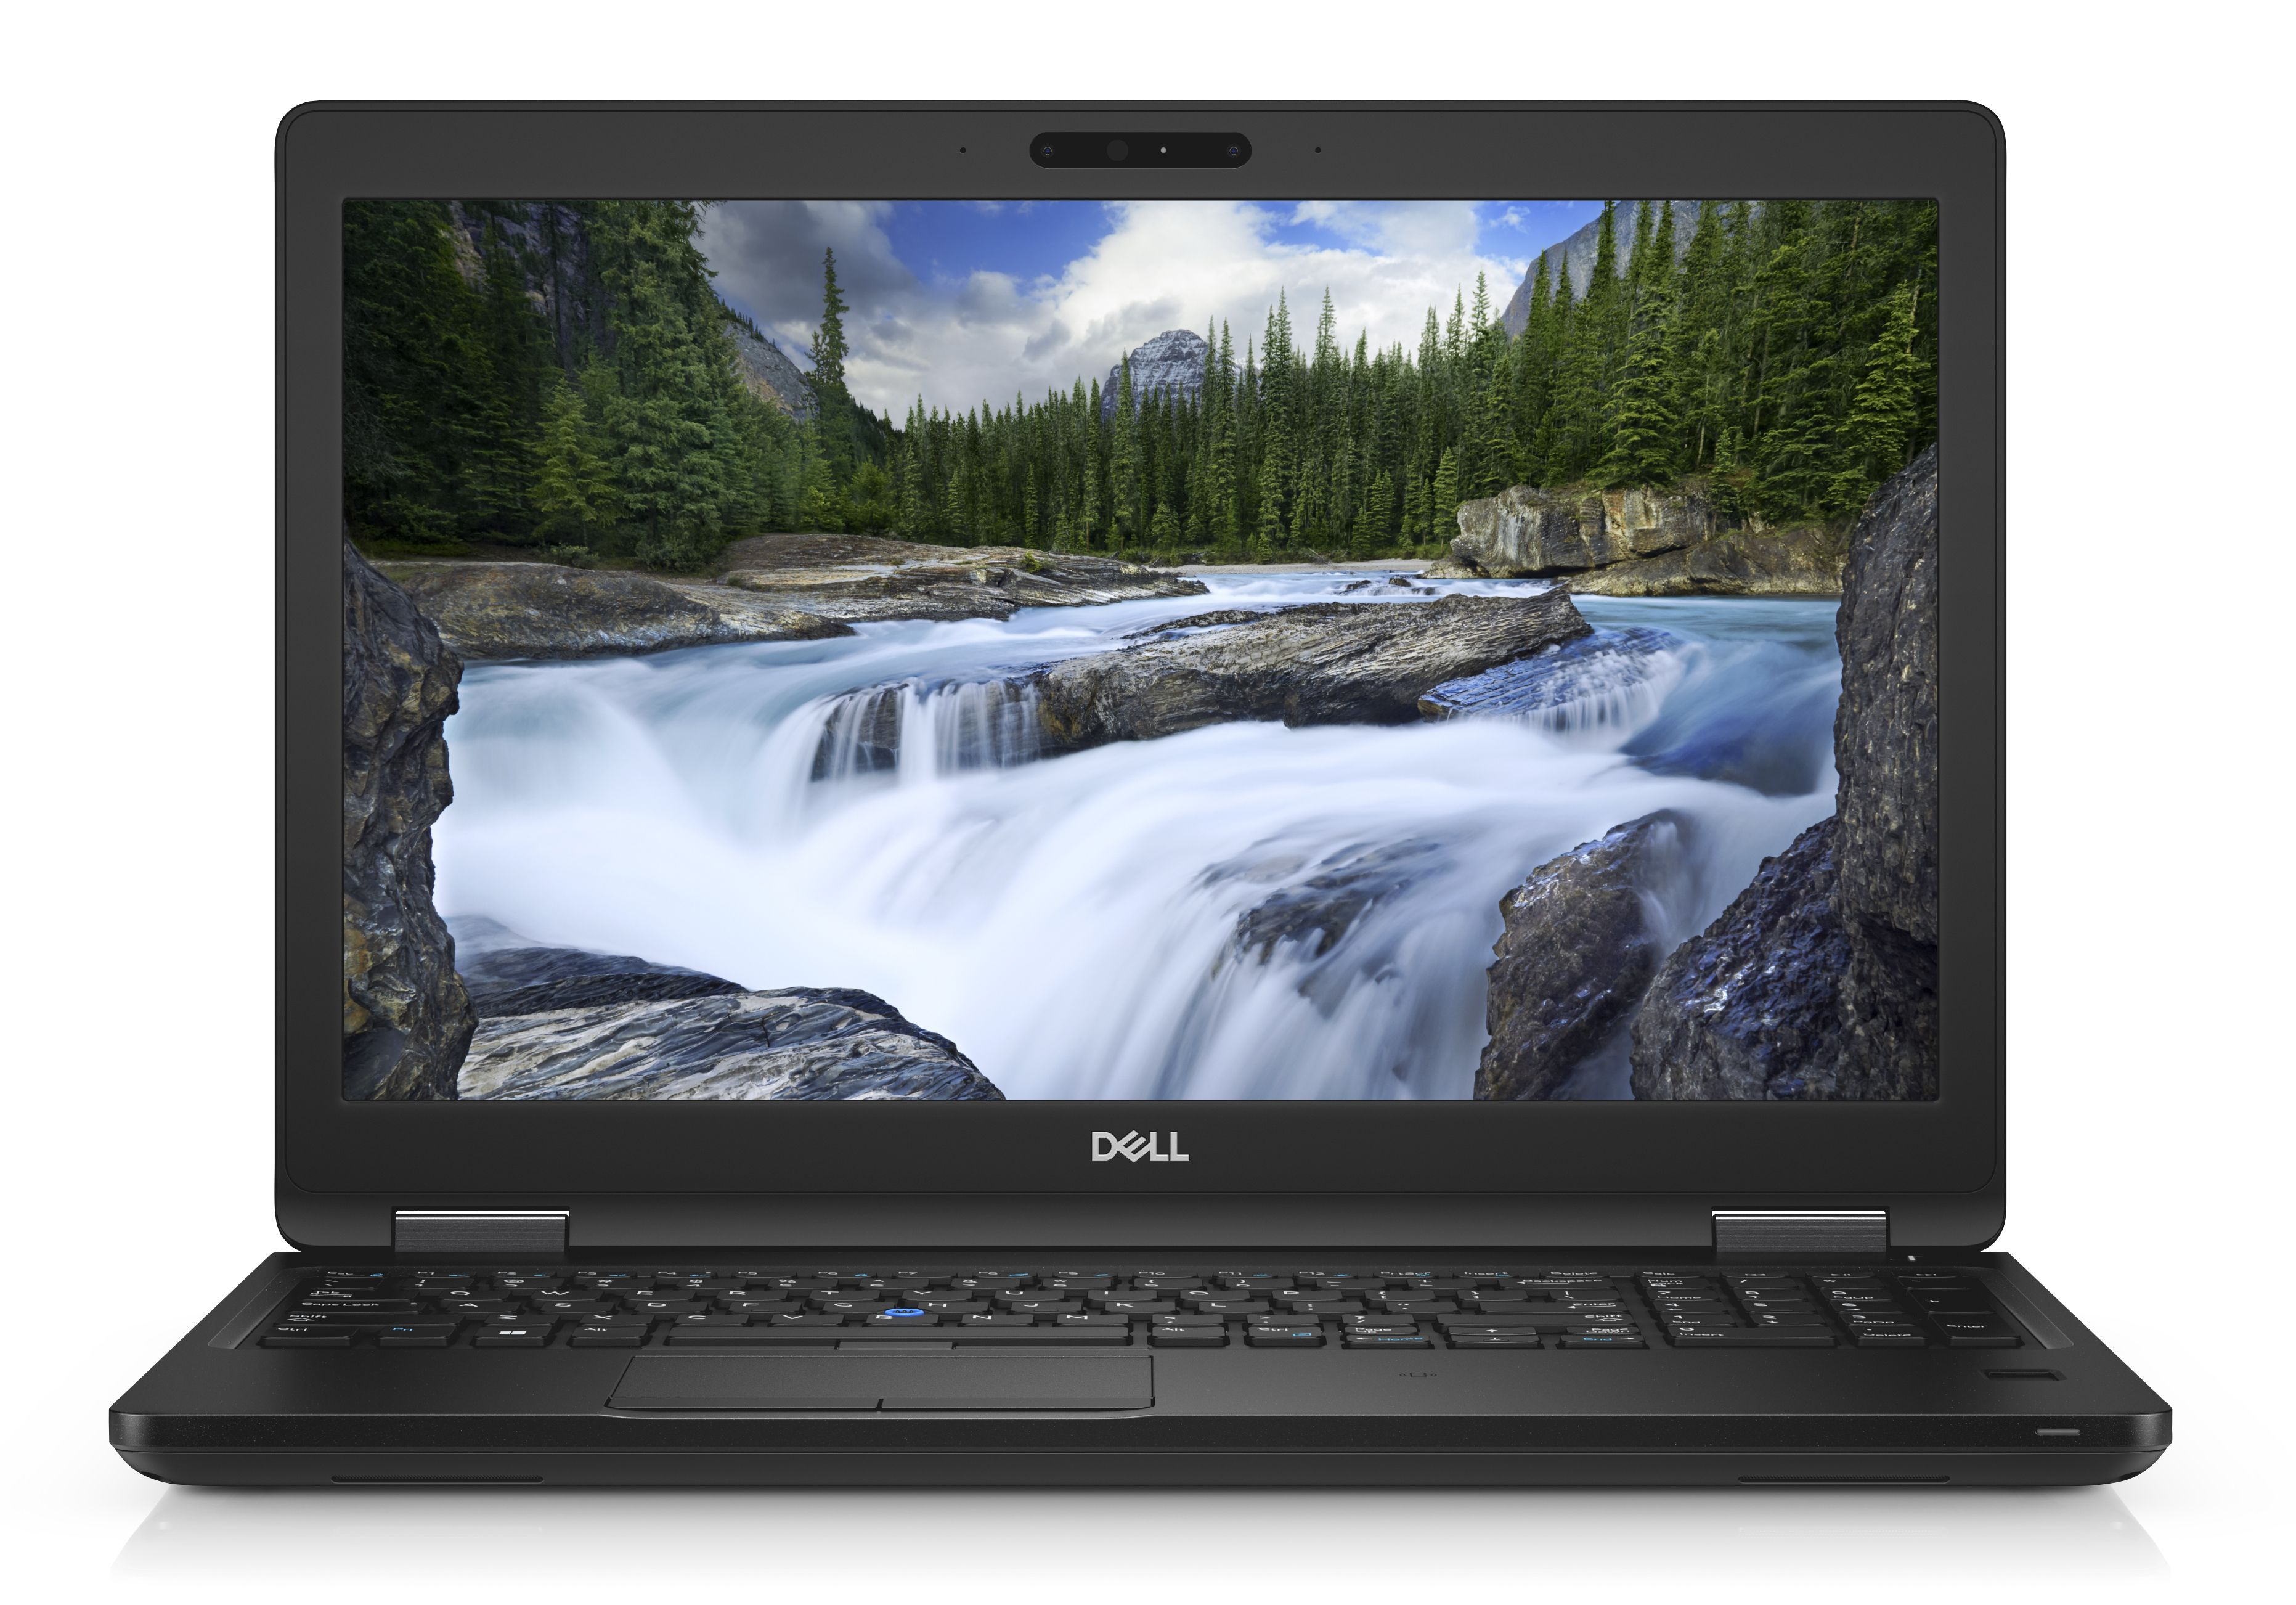 Notebook Dell Latitude 5590 15.6 Full HD Intel Core i5-8350U RAM 8GB SSD 256GB Windows 10 Pro